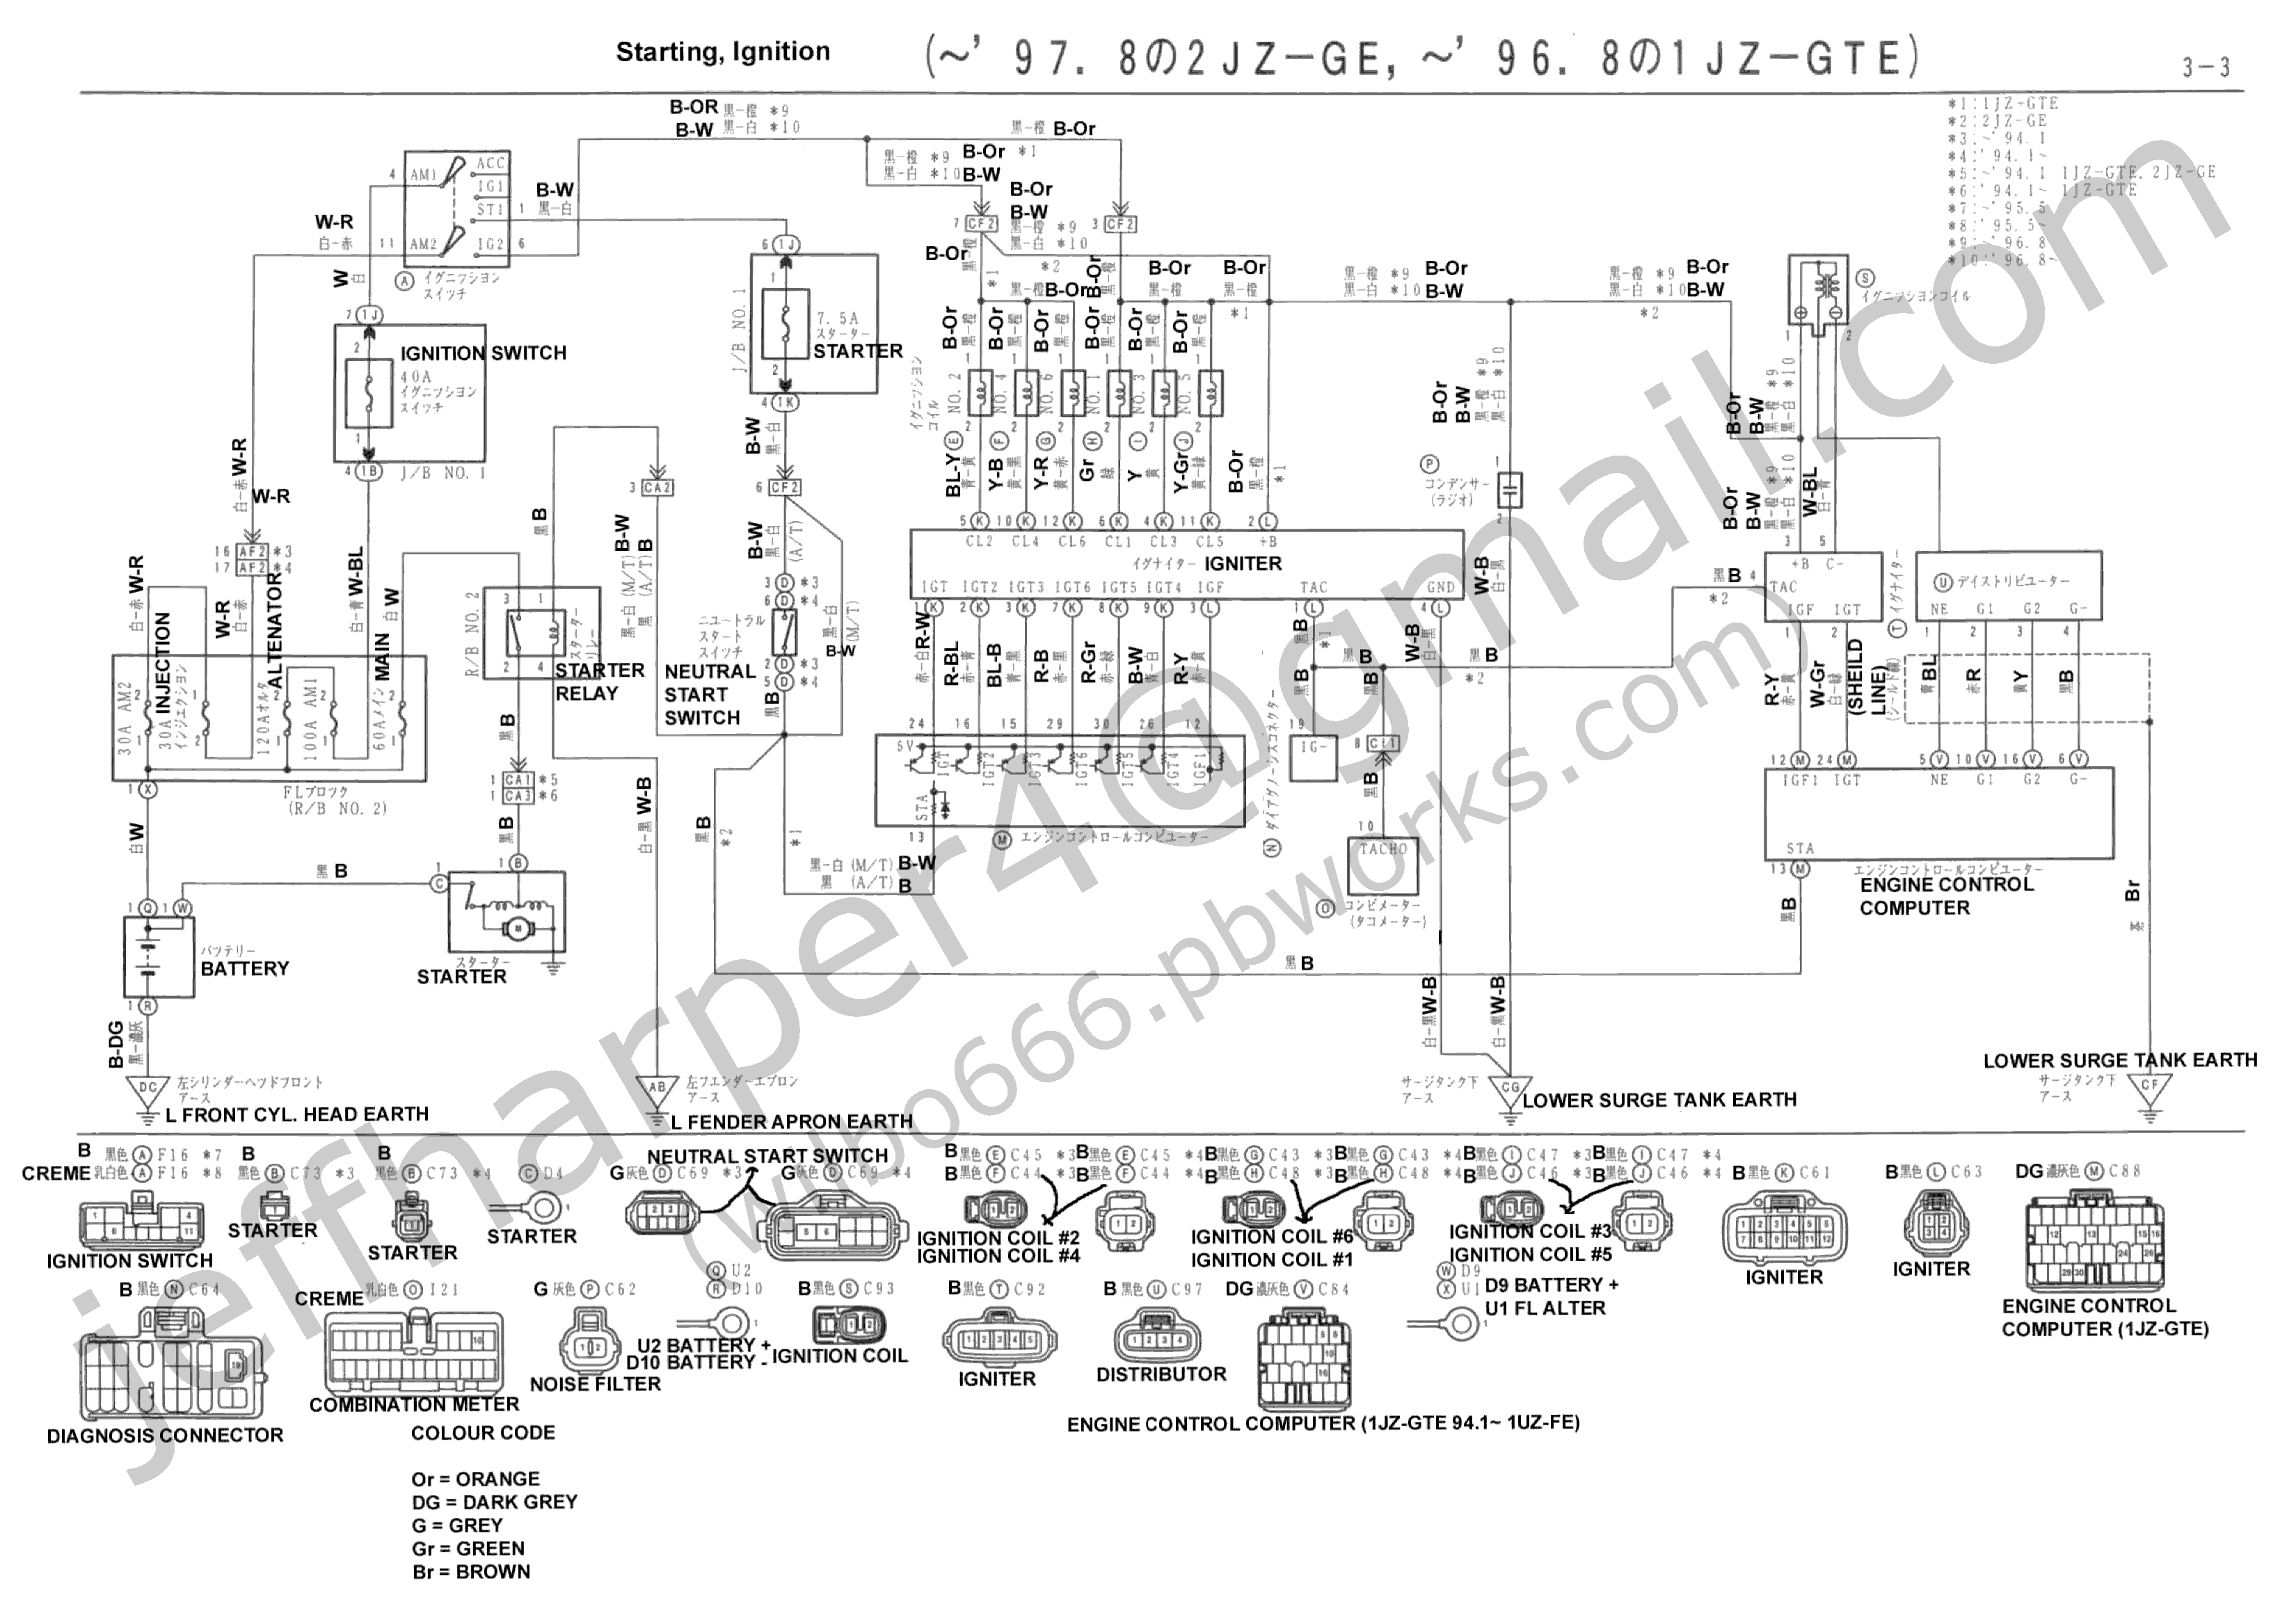 small resolution of 1jz wiring harness diagram 1jz circuit diagrams blog wiring diagram 1jz motor wiring 1jz circuit diagrams